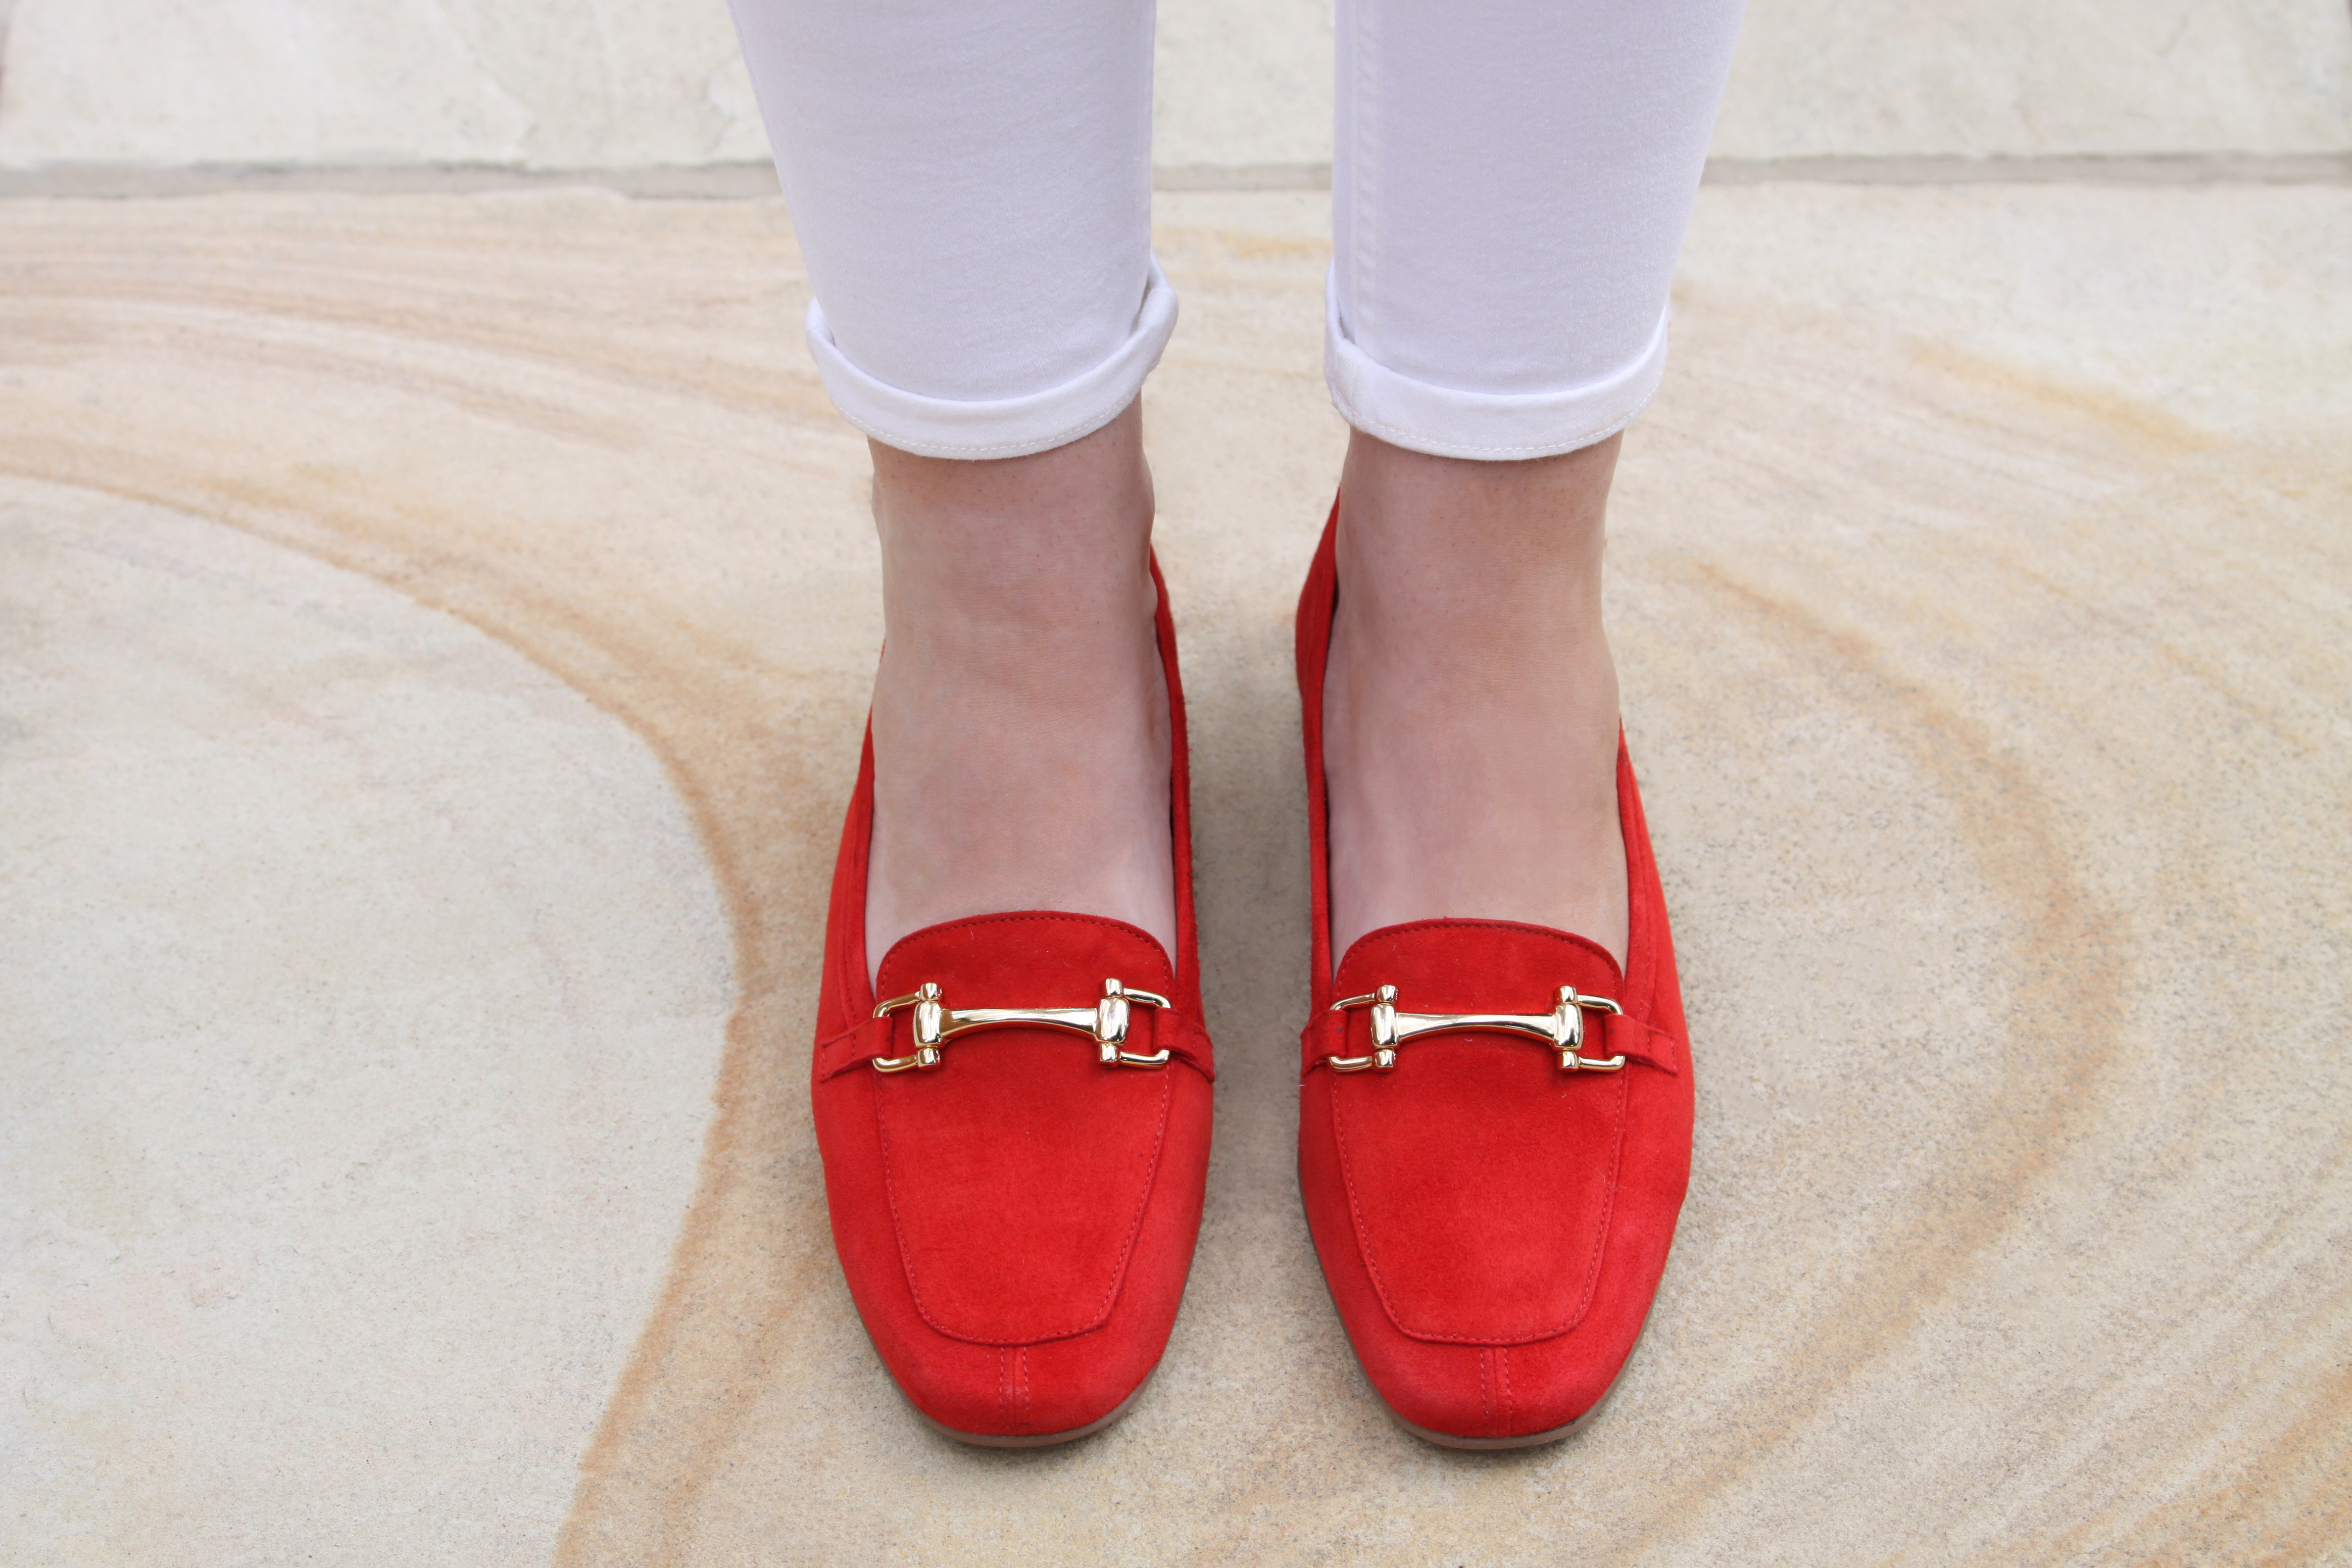 Comfortable and stylish red suede loafers by Lisa Kay